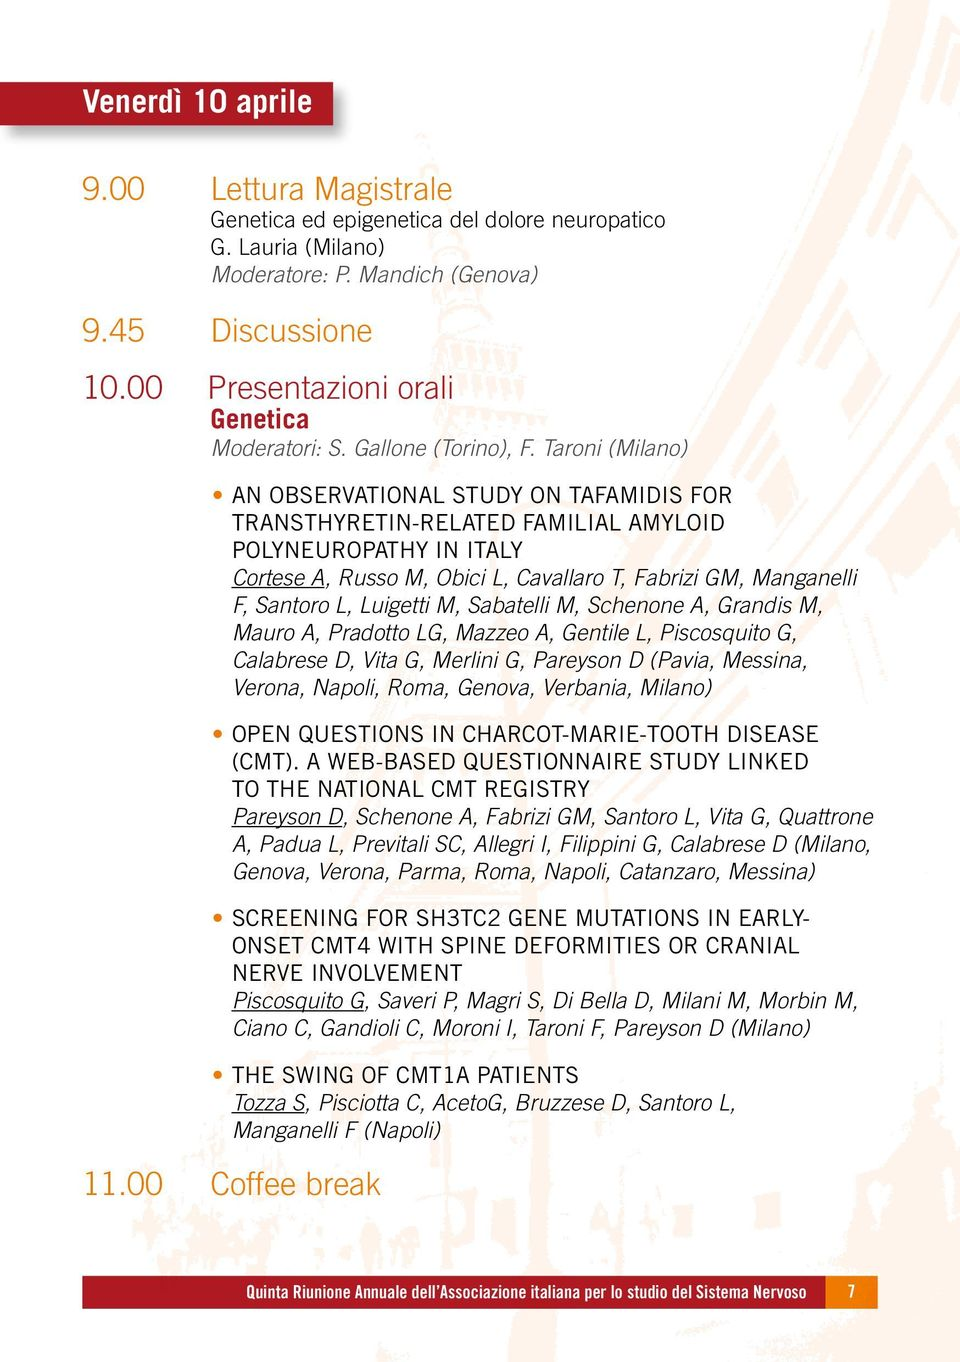 Taroni (Milano) AN OBSERVATIONAL STUDY ON TAFAMIDIS FOR TRANSTHYRETIN-RELATED FAMILIAL AMYLOID POLYNEUROPATHY IN ITALY Cortese A, Russo M, Obici L, Cavallaro T, Fabrizi GM, Manganelli F, Santoro L,